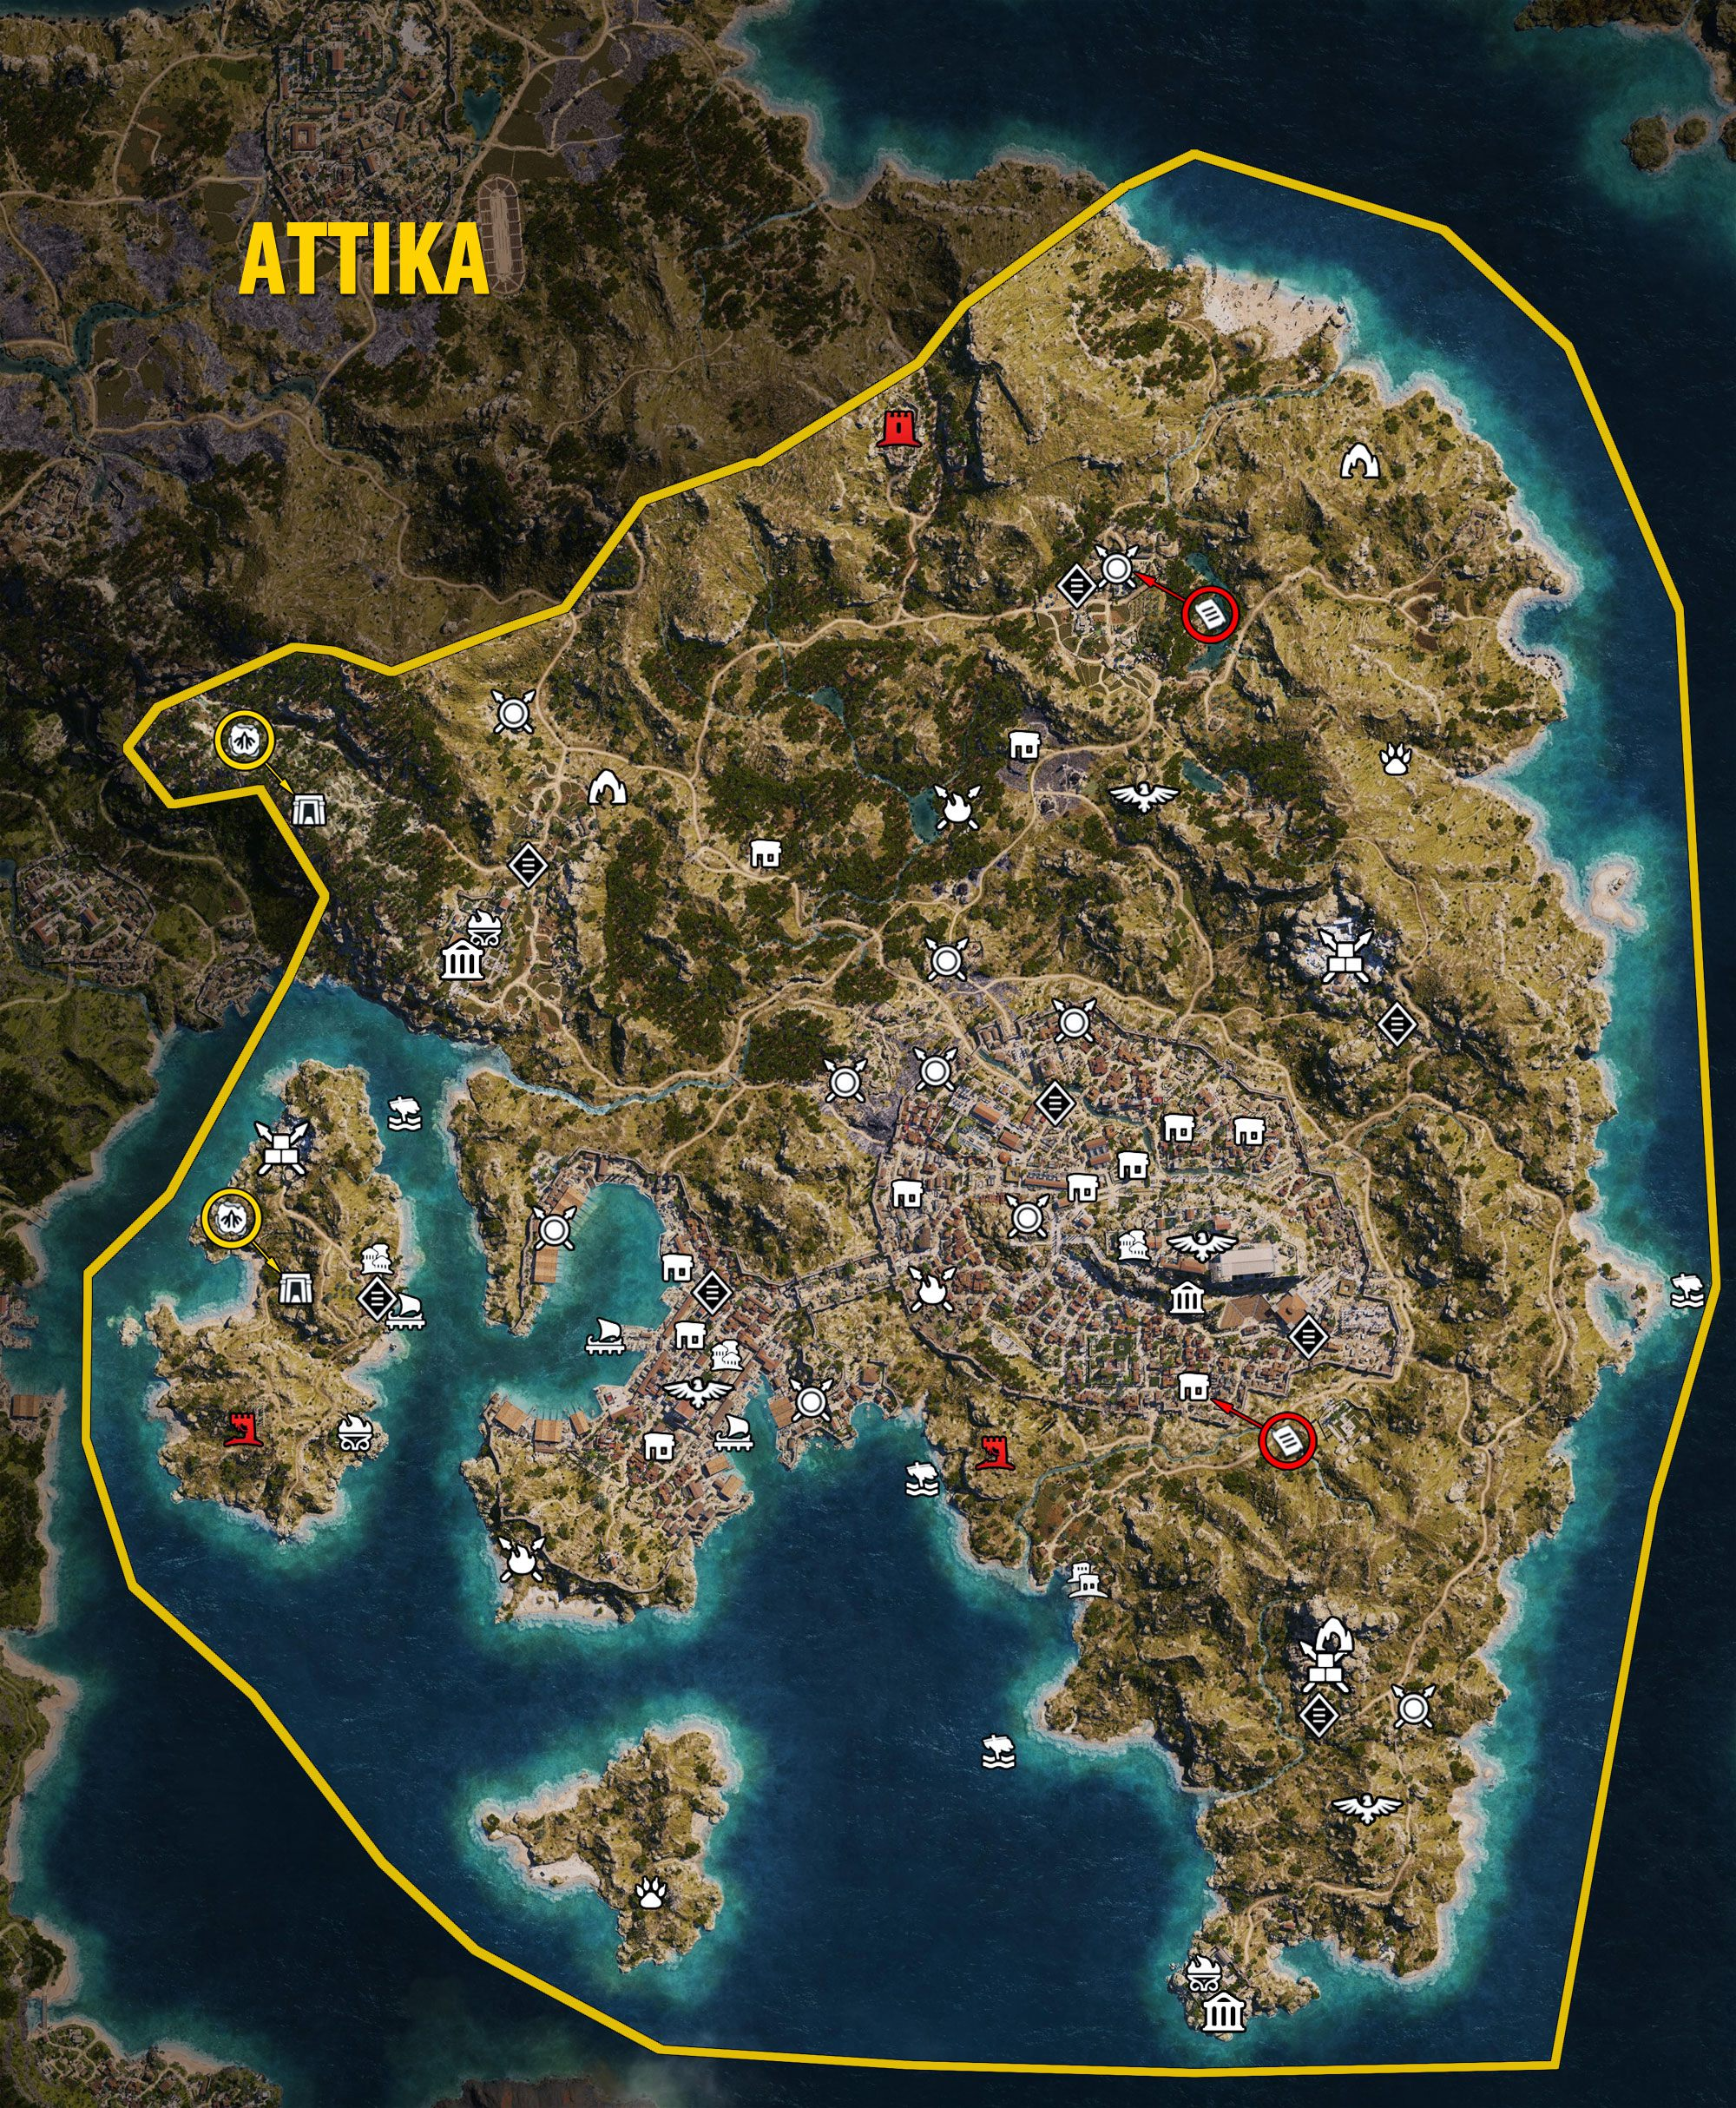 Check out the full world map for Assassin's Creed: Odyssey